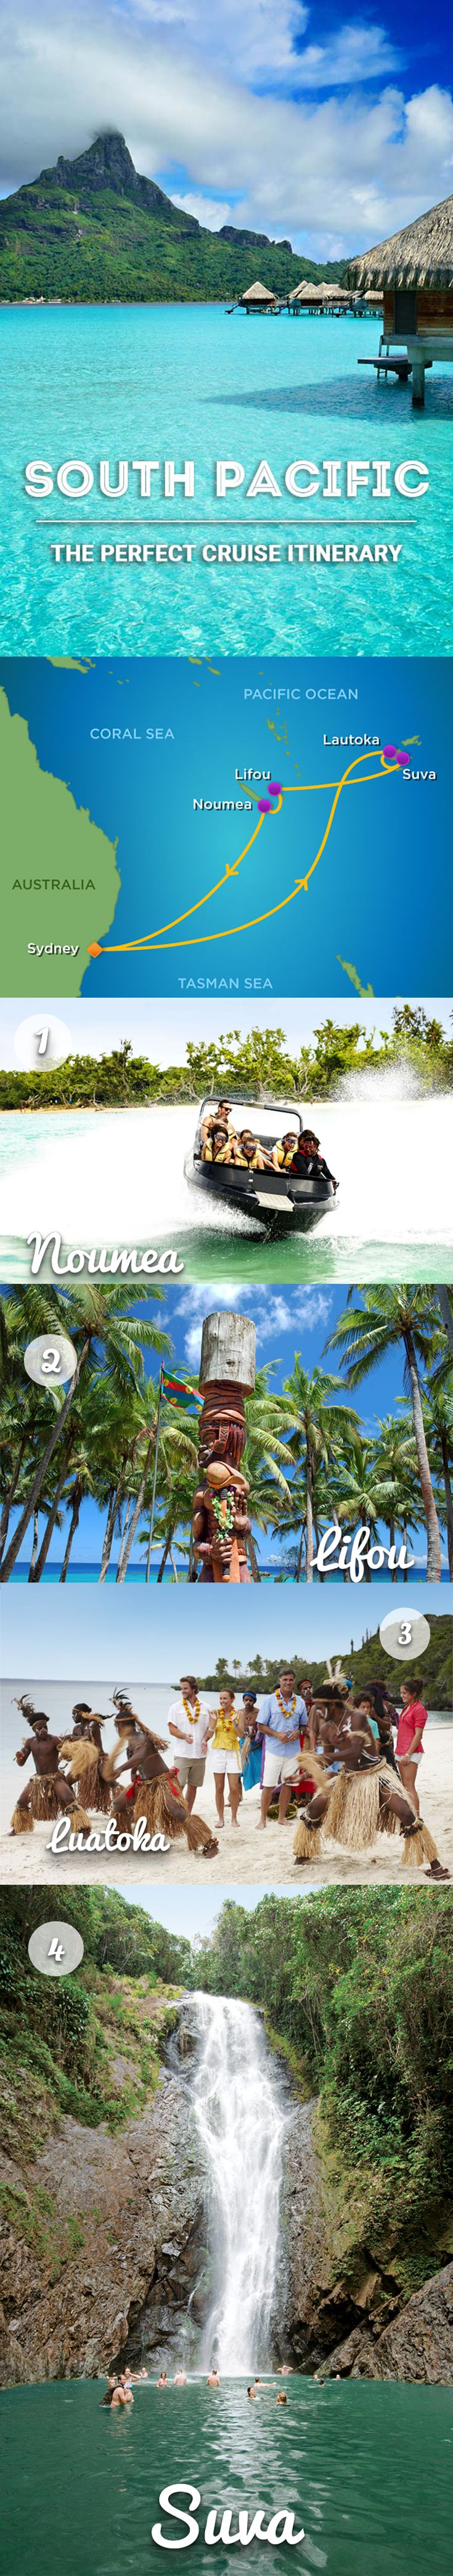 The South Pacific is a cruise destination sought after by cruisers worldwide. It's heavenly blue waters, white sandy beaches and dreamy island hideaways evoke a sense of wonder and pure paradise as the ultimate blissed-out destination.  Take in the best of this region with great itineraries from Brisbane & Sydney. Click the link to find out more.